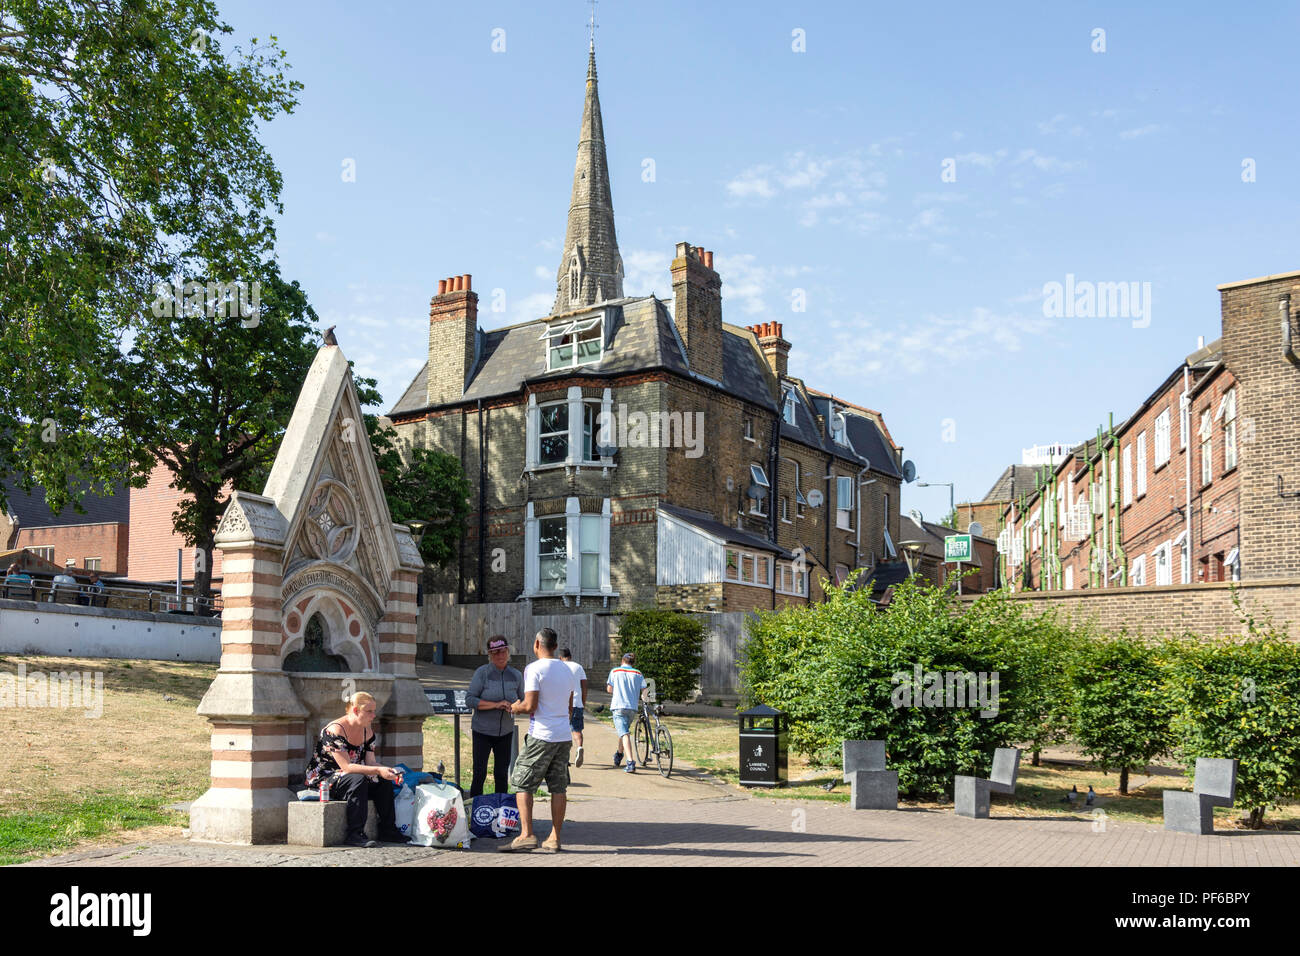 Dyce Drinking Fountain and spire of St Leonard's Church, Streatham Green, Streatham, London Borough of Wandsworth, London, England, United Kingdom - Stock Image